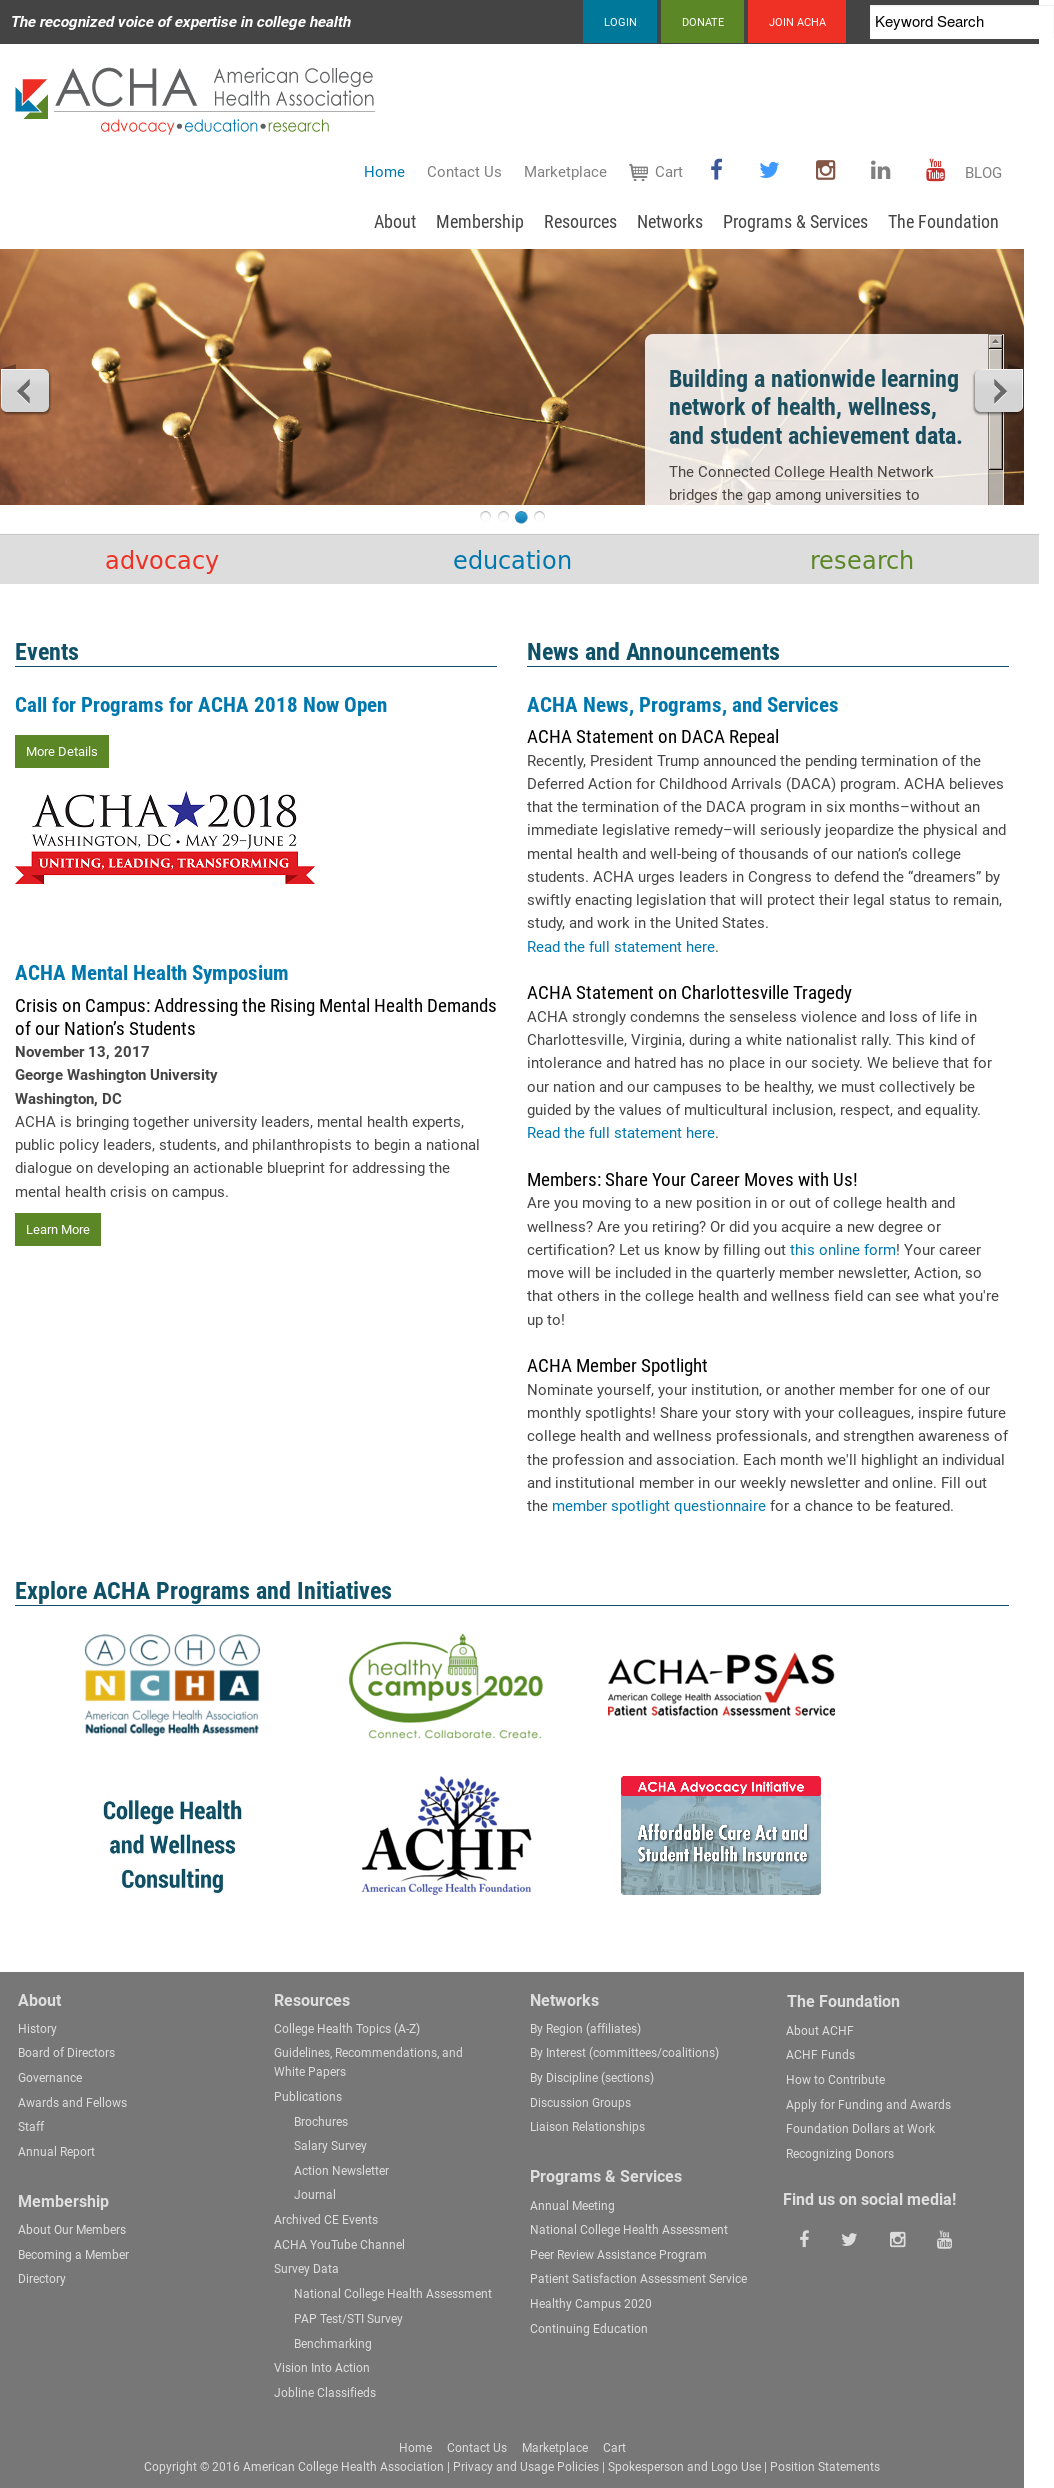 American College Health Association Competitors, Revenue and